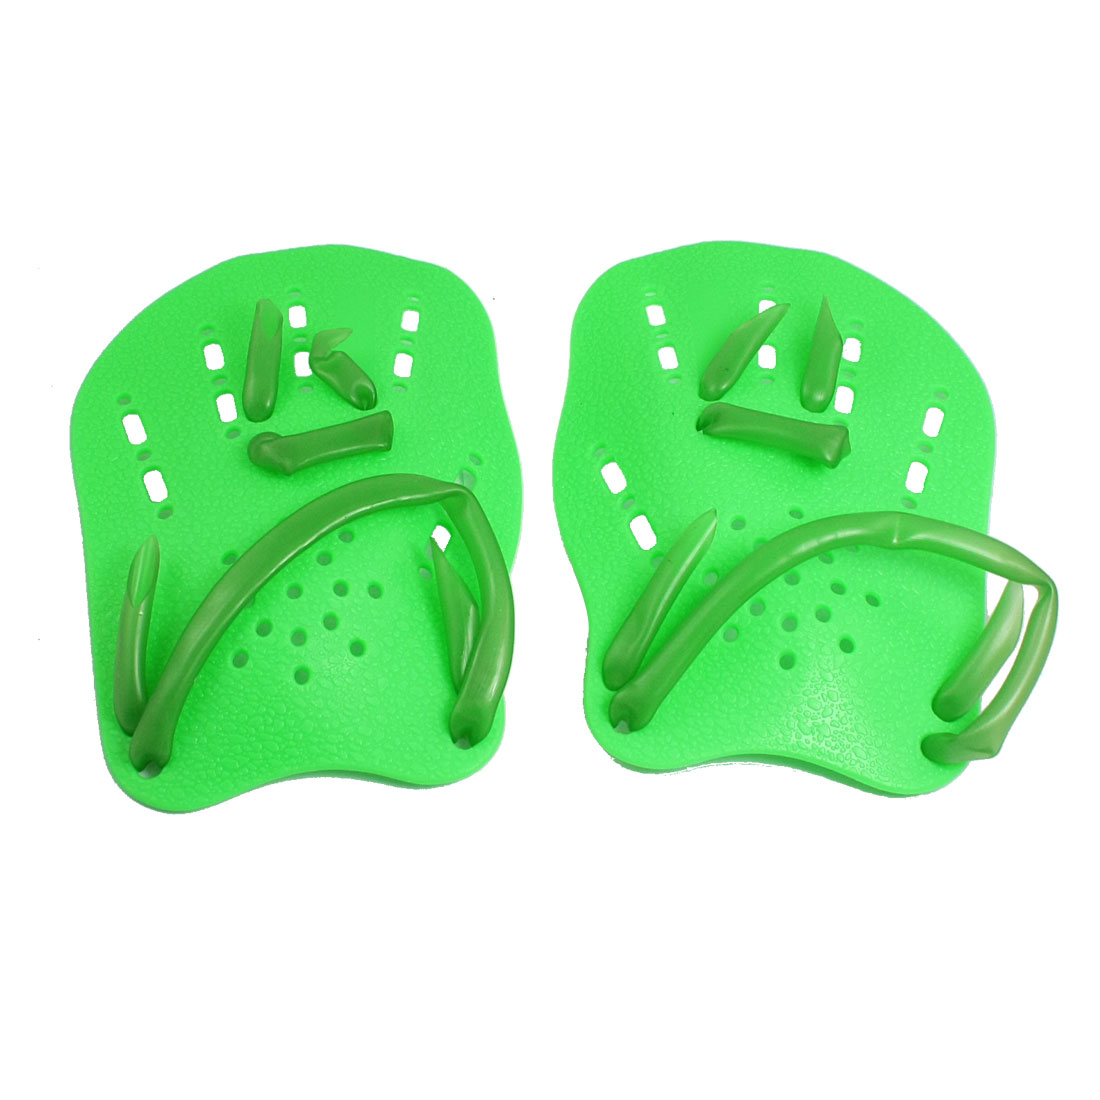 Pair Green Adjustable Tubing Strap Swimming Webbed Gloves